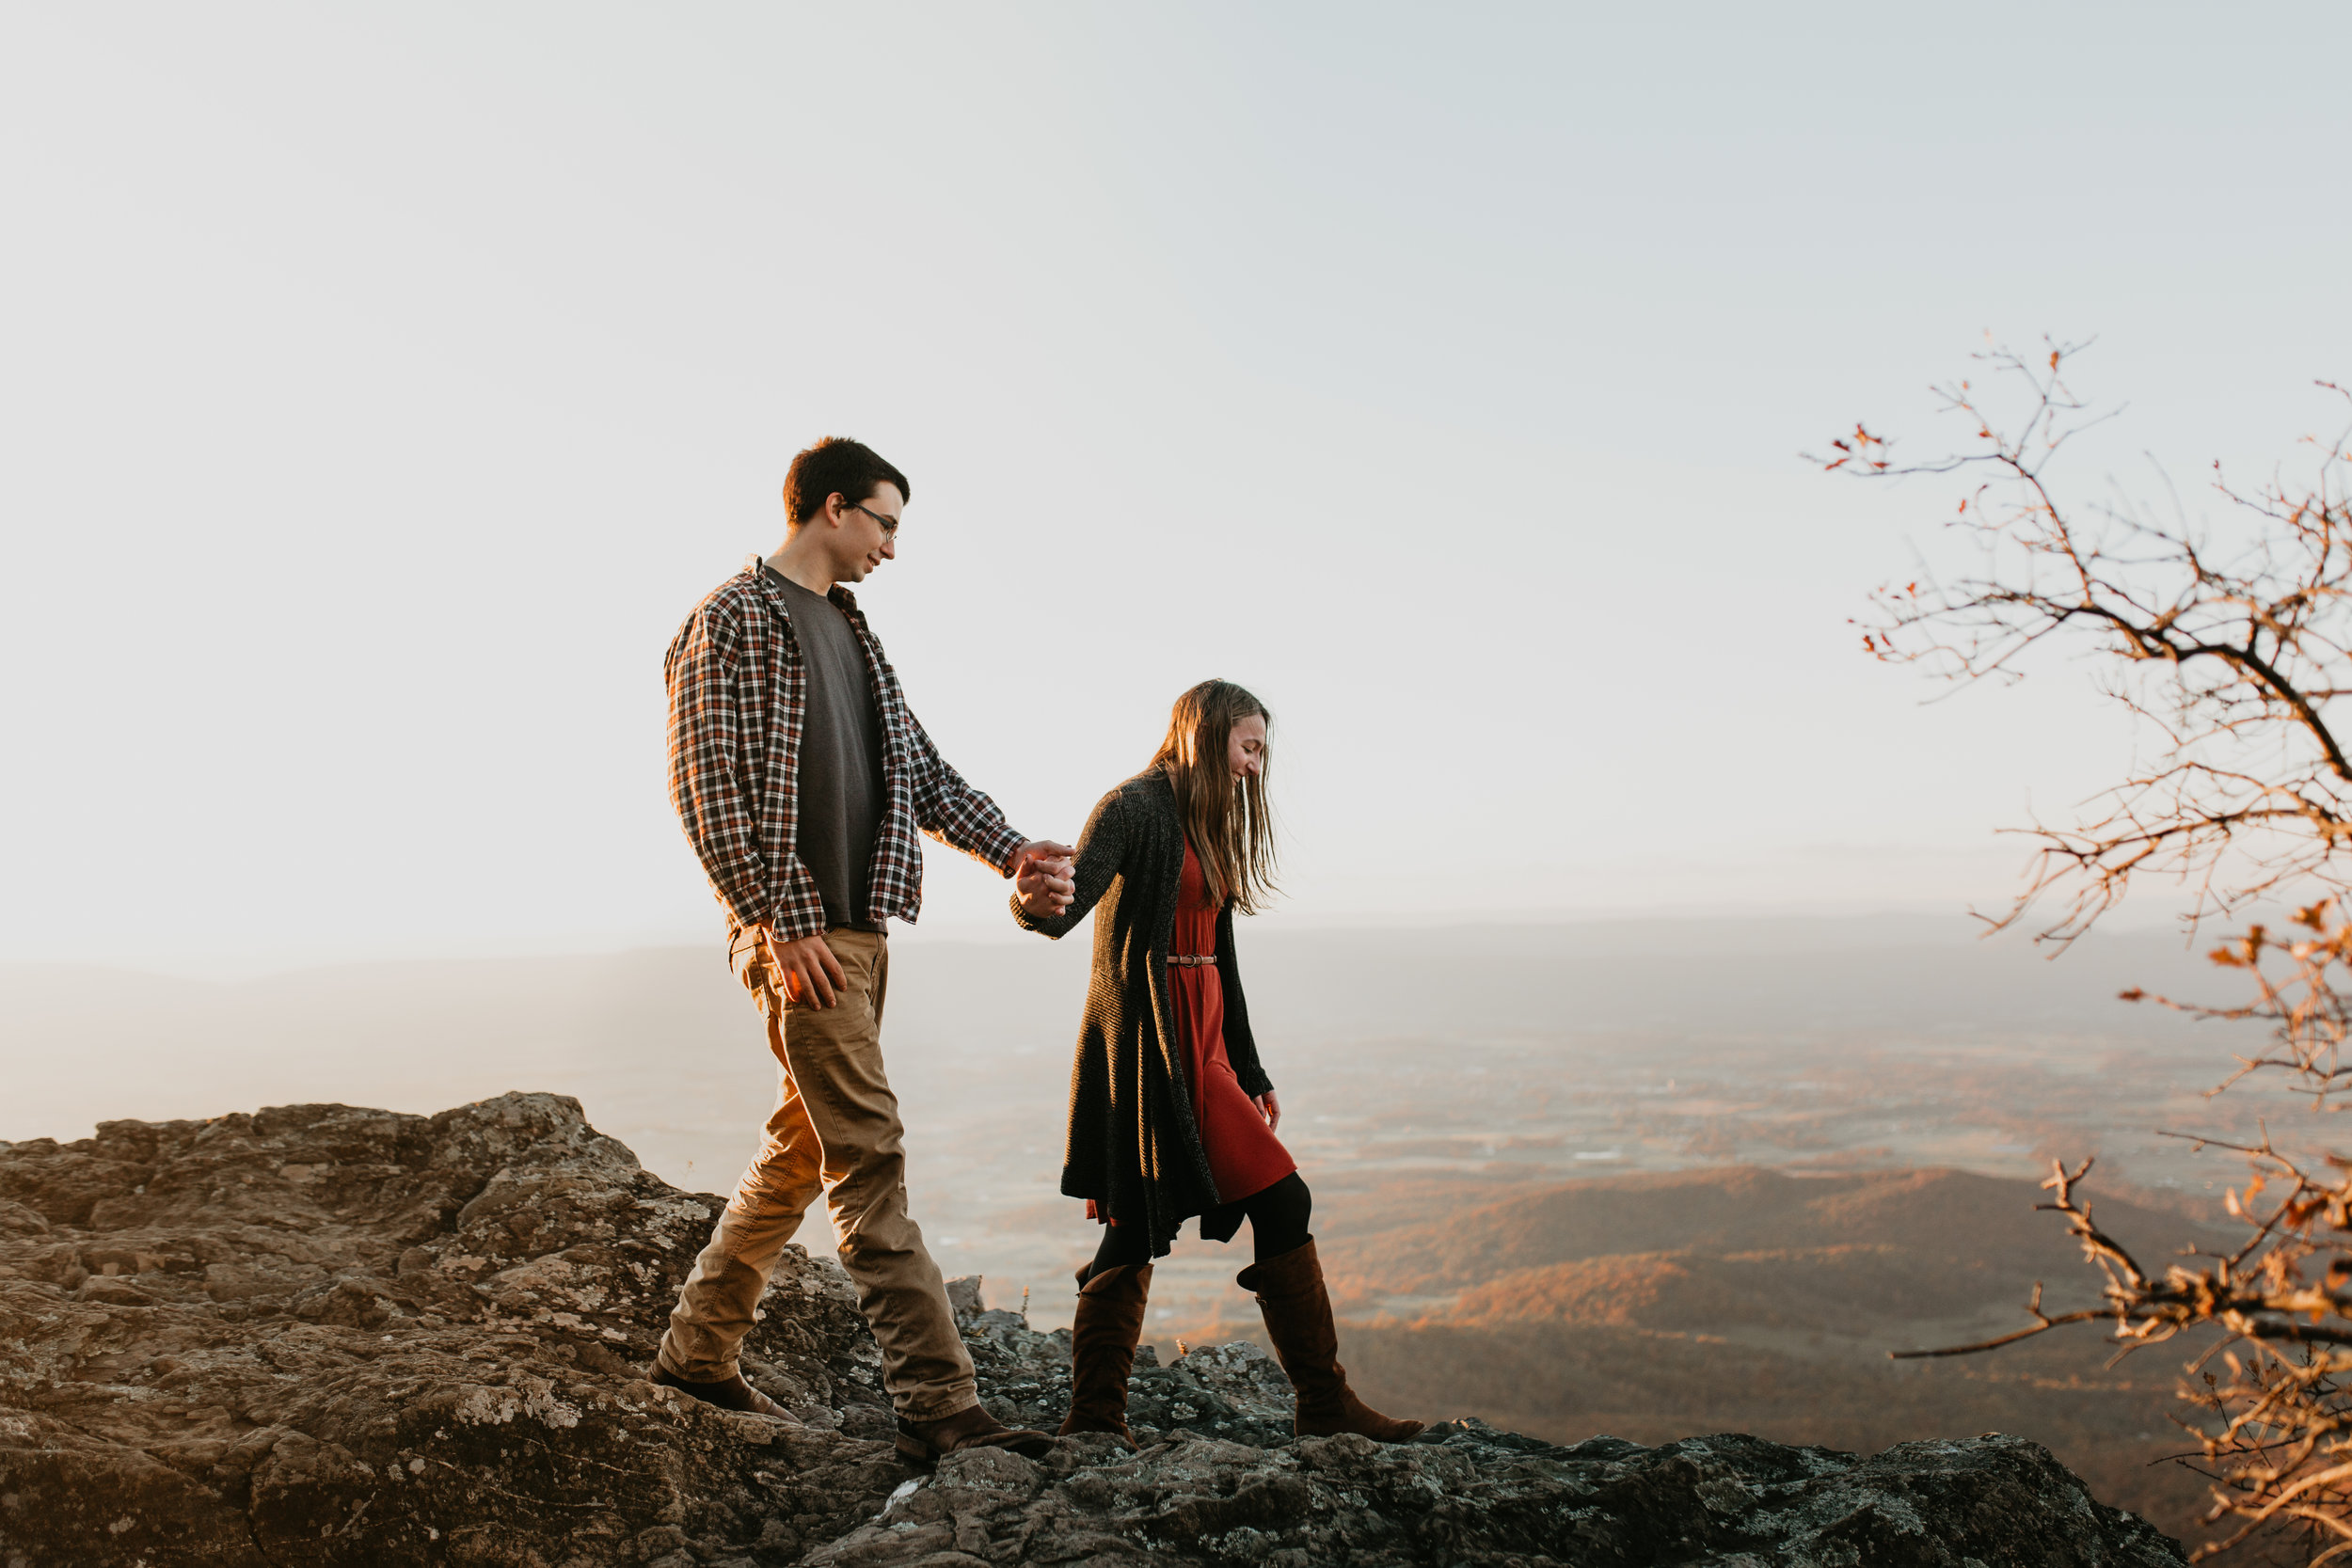 nicole-daacke-photography-shenandoah-national-park-adventure-engagement-session-with-fall-foliage-shenandoah-elopement-photographer-engagement-photos-in-virginia-charlottesville-national-park-adventure-elopement-photographer-3880.jpg